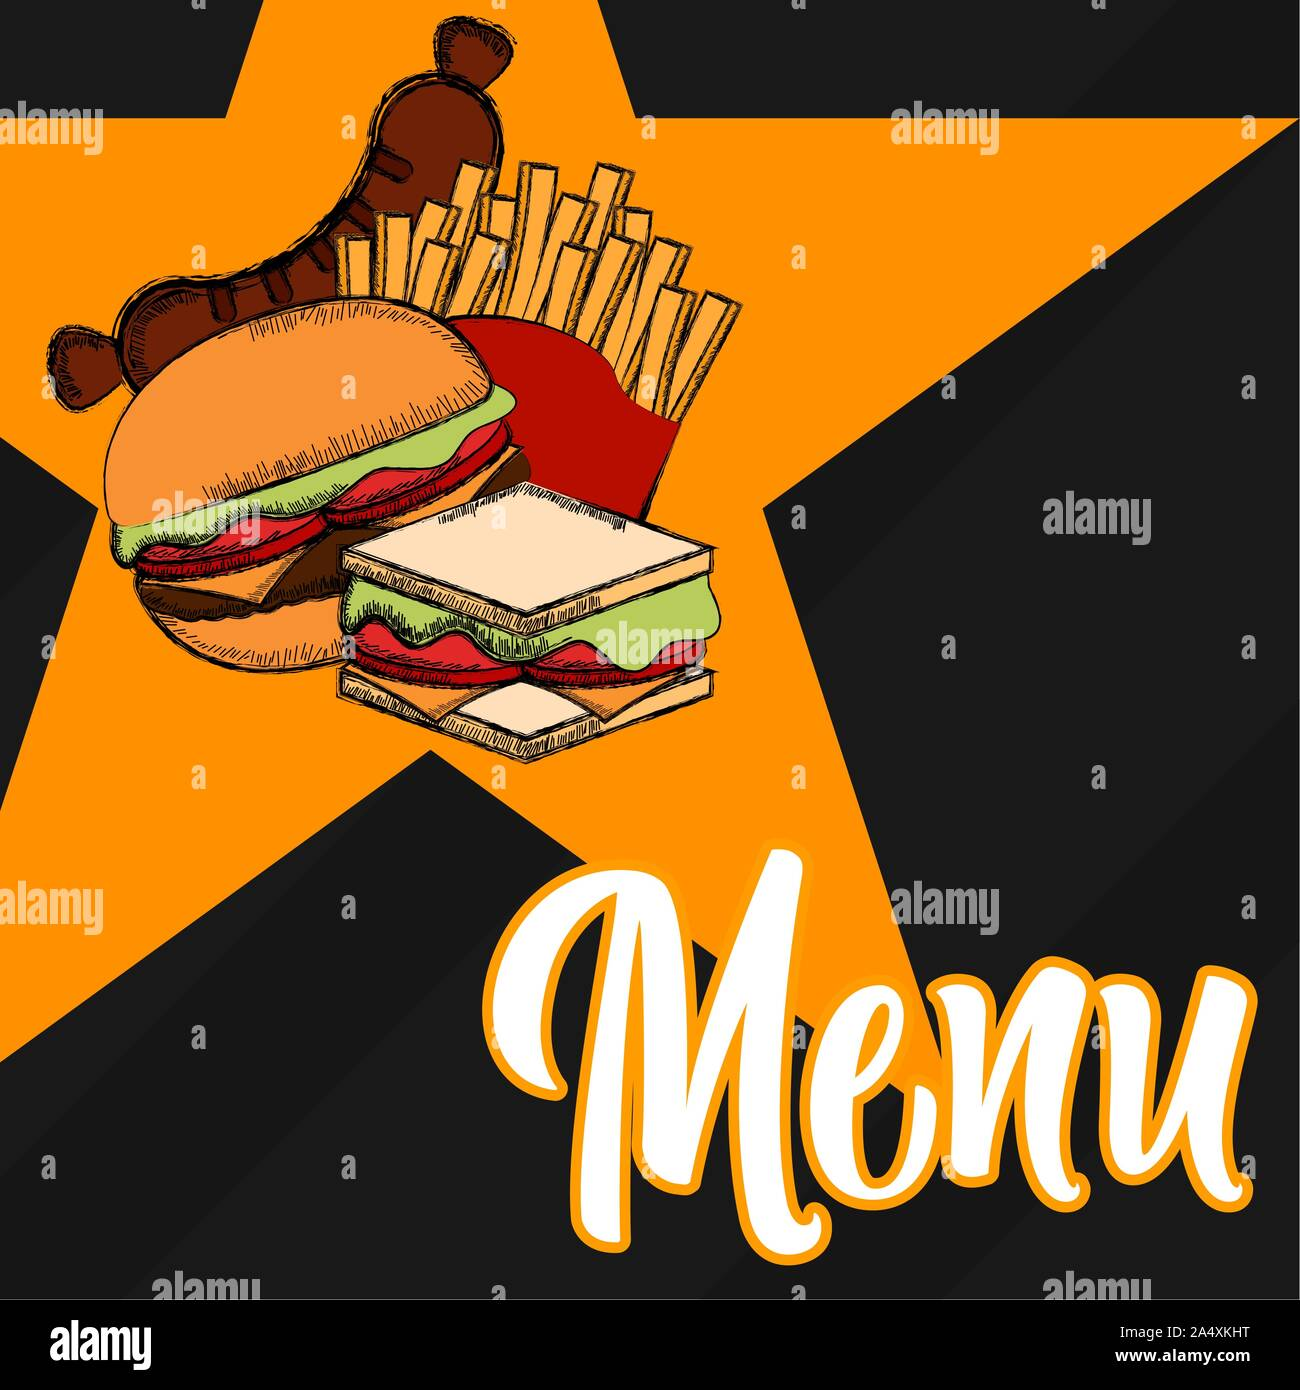 Fast Food Menu Restaurant Menu Design Vector Illustration Stock Vector Image Art Alamy